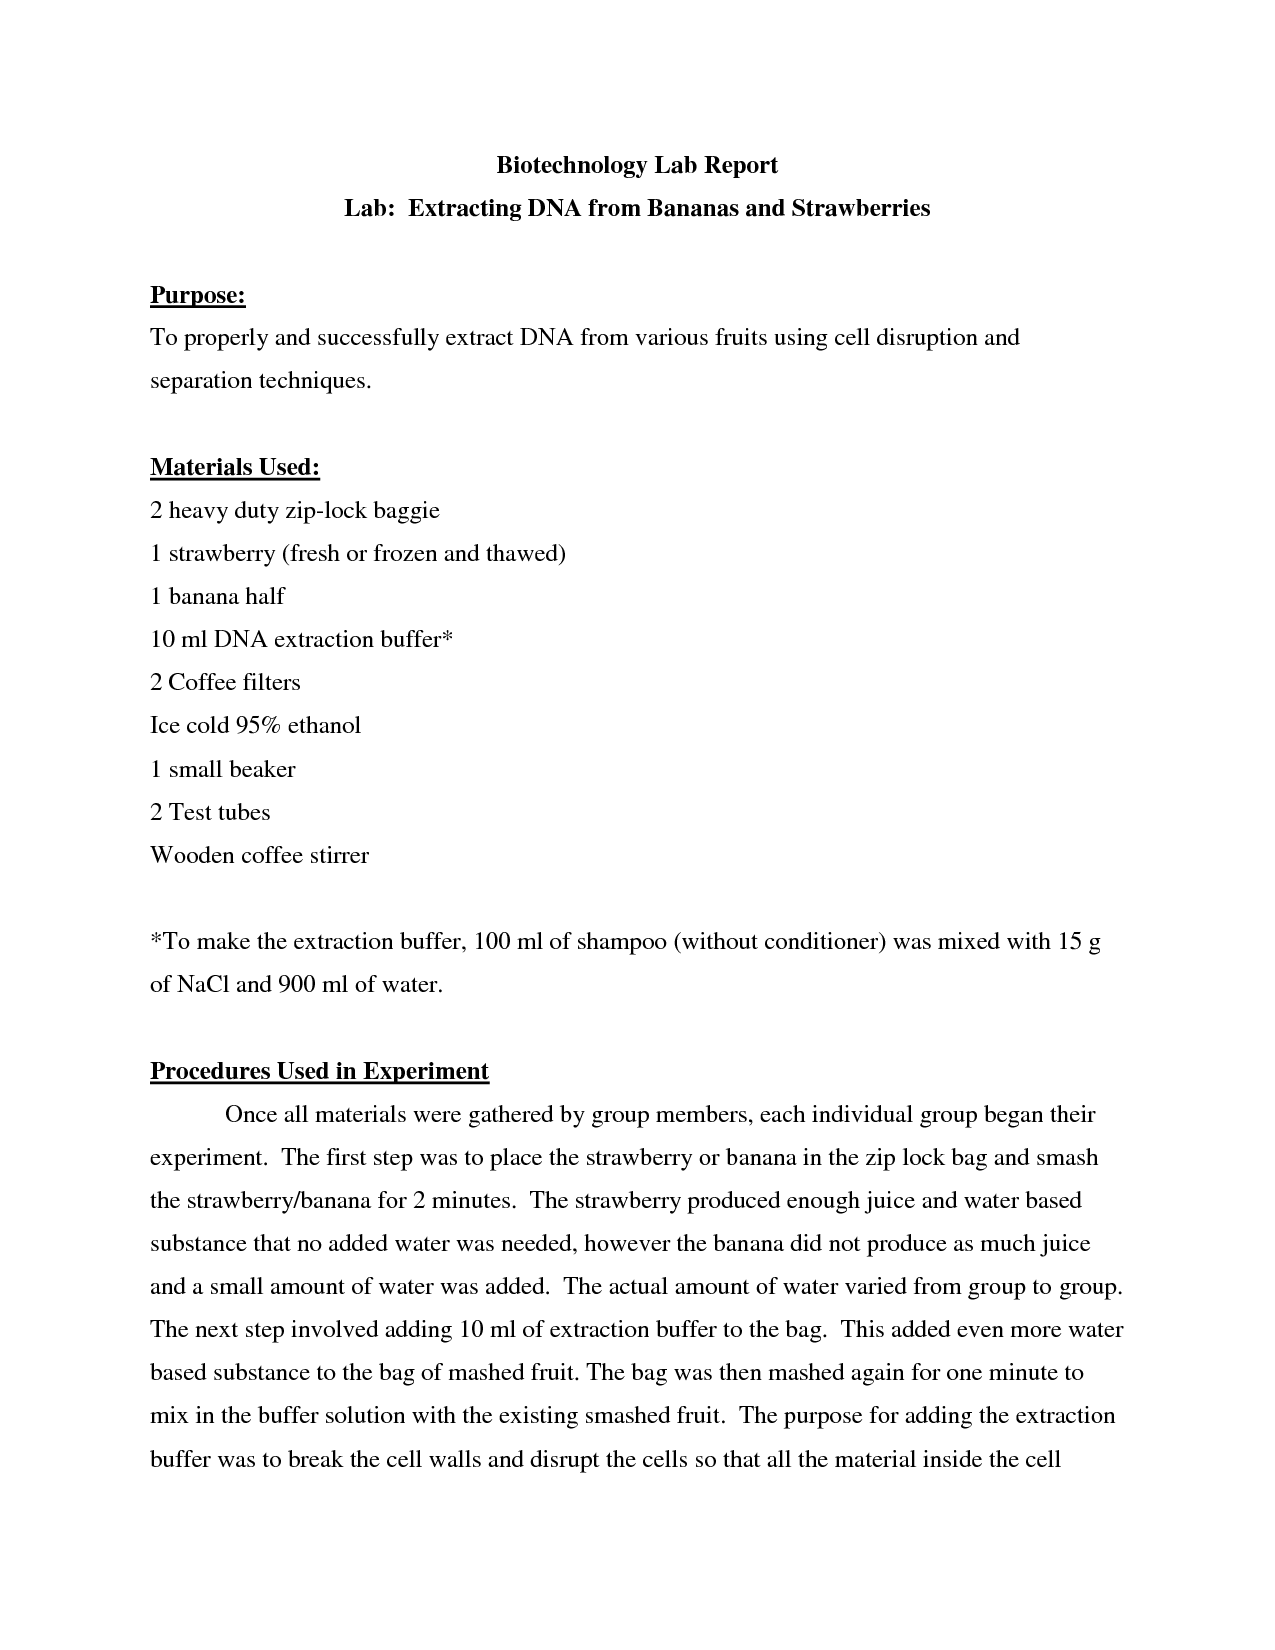 Dna Extraction Lab Report Extracting Onion Dna 02 17